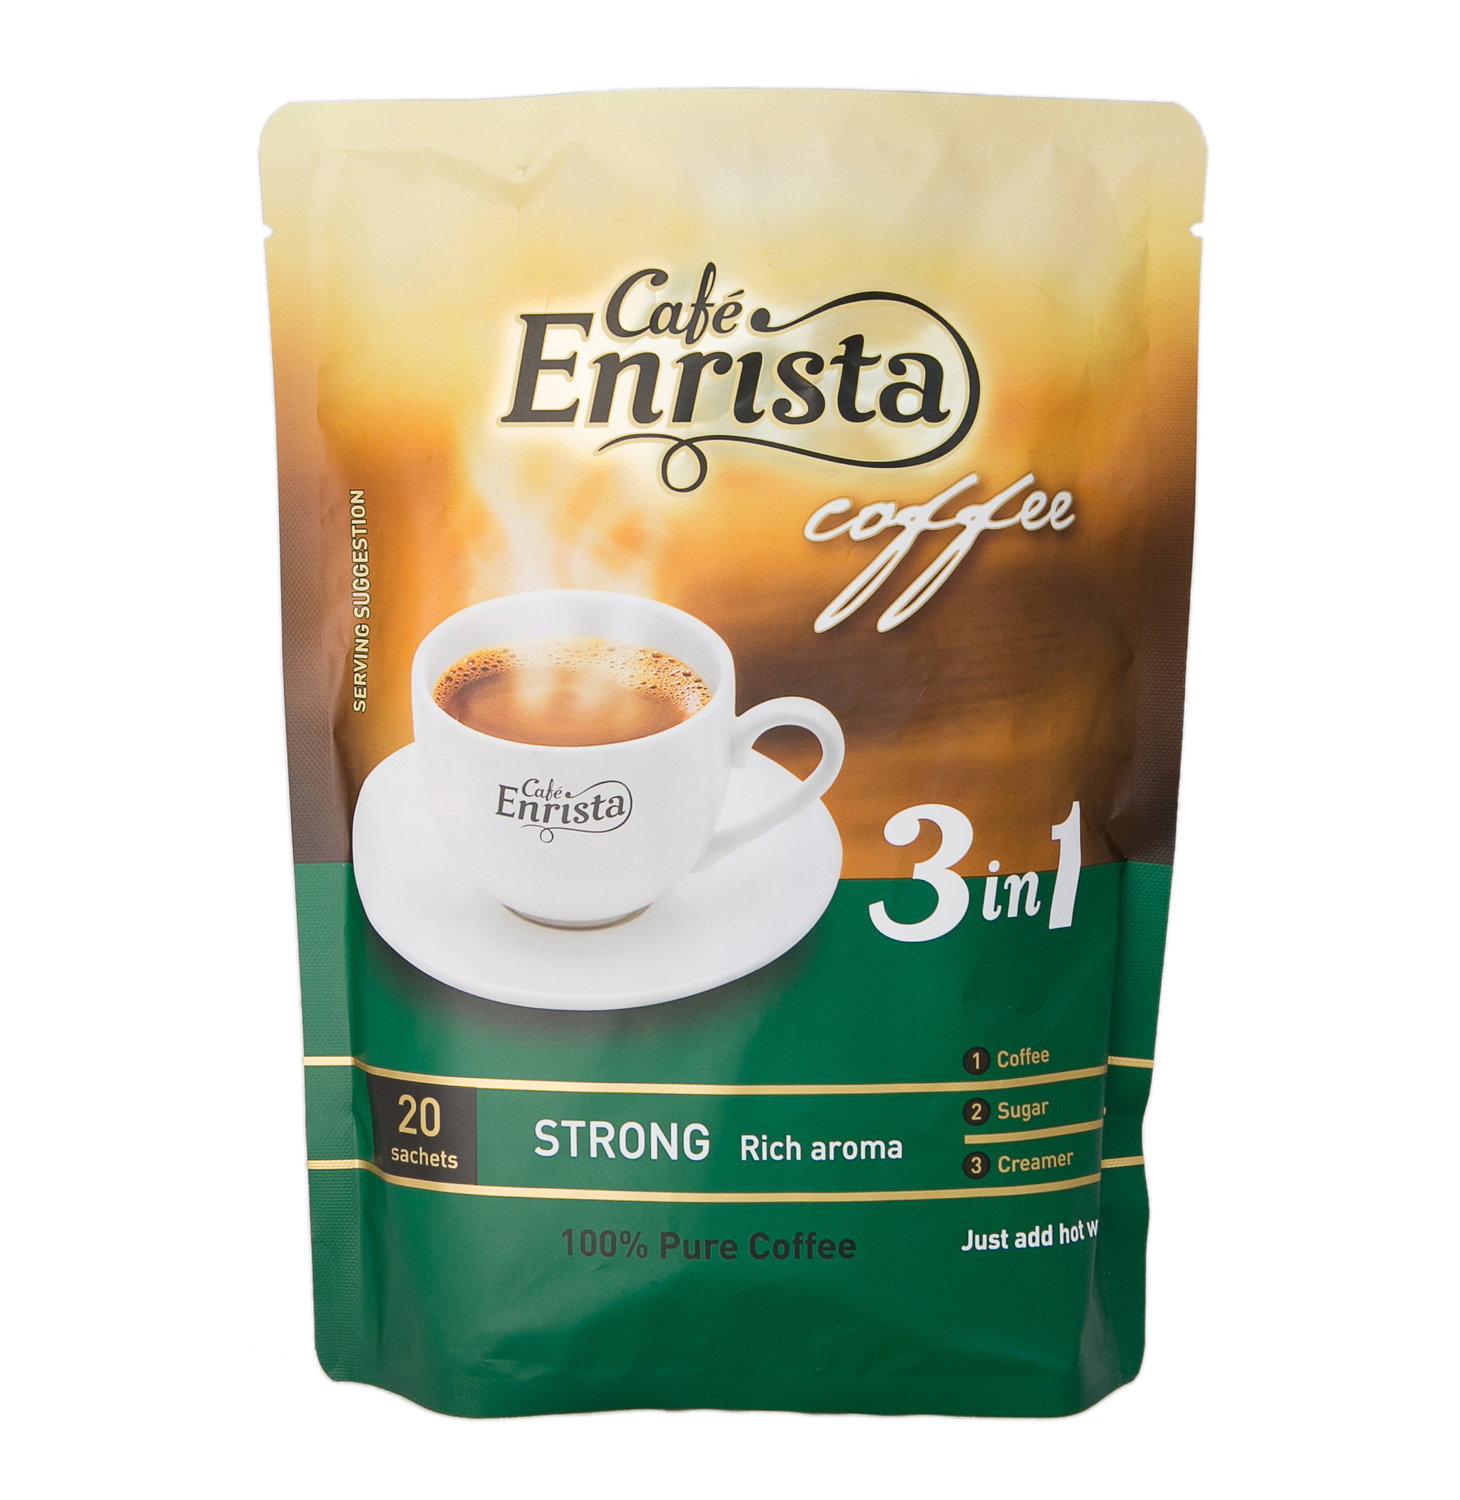 Cafe Enrista Coffee 3-in-1 Strong (1 x 20's)